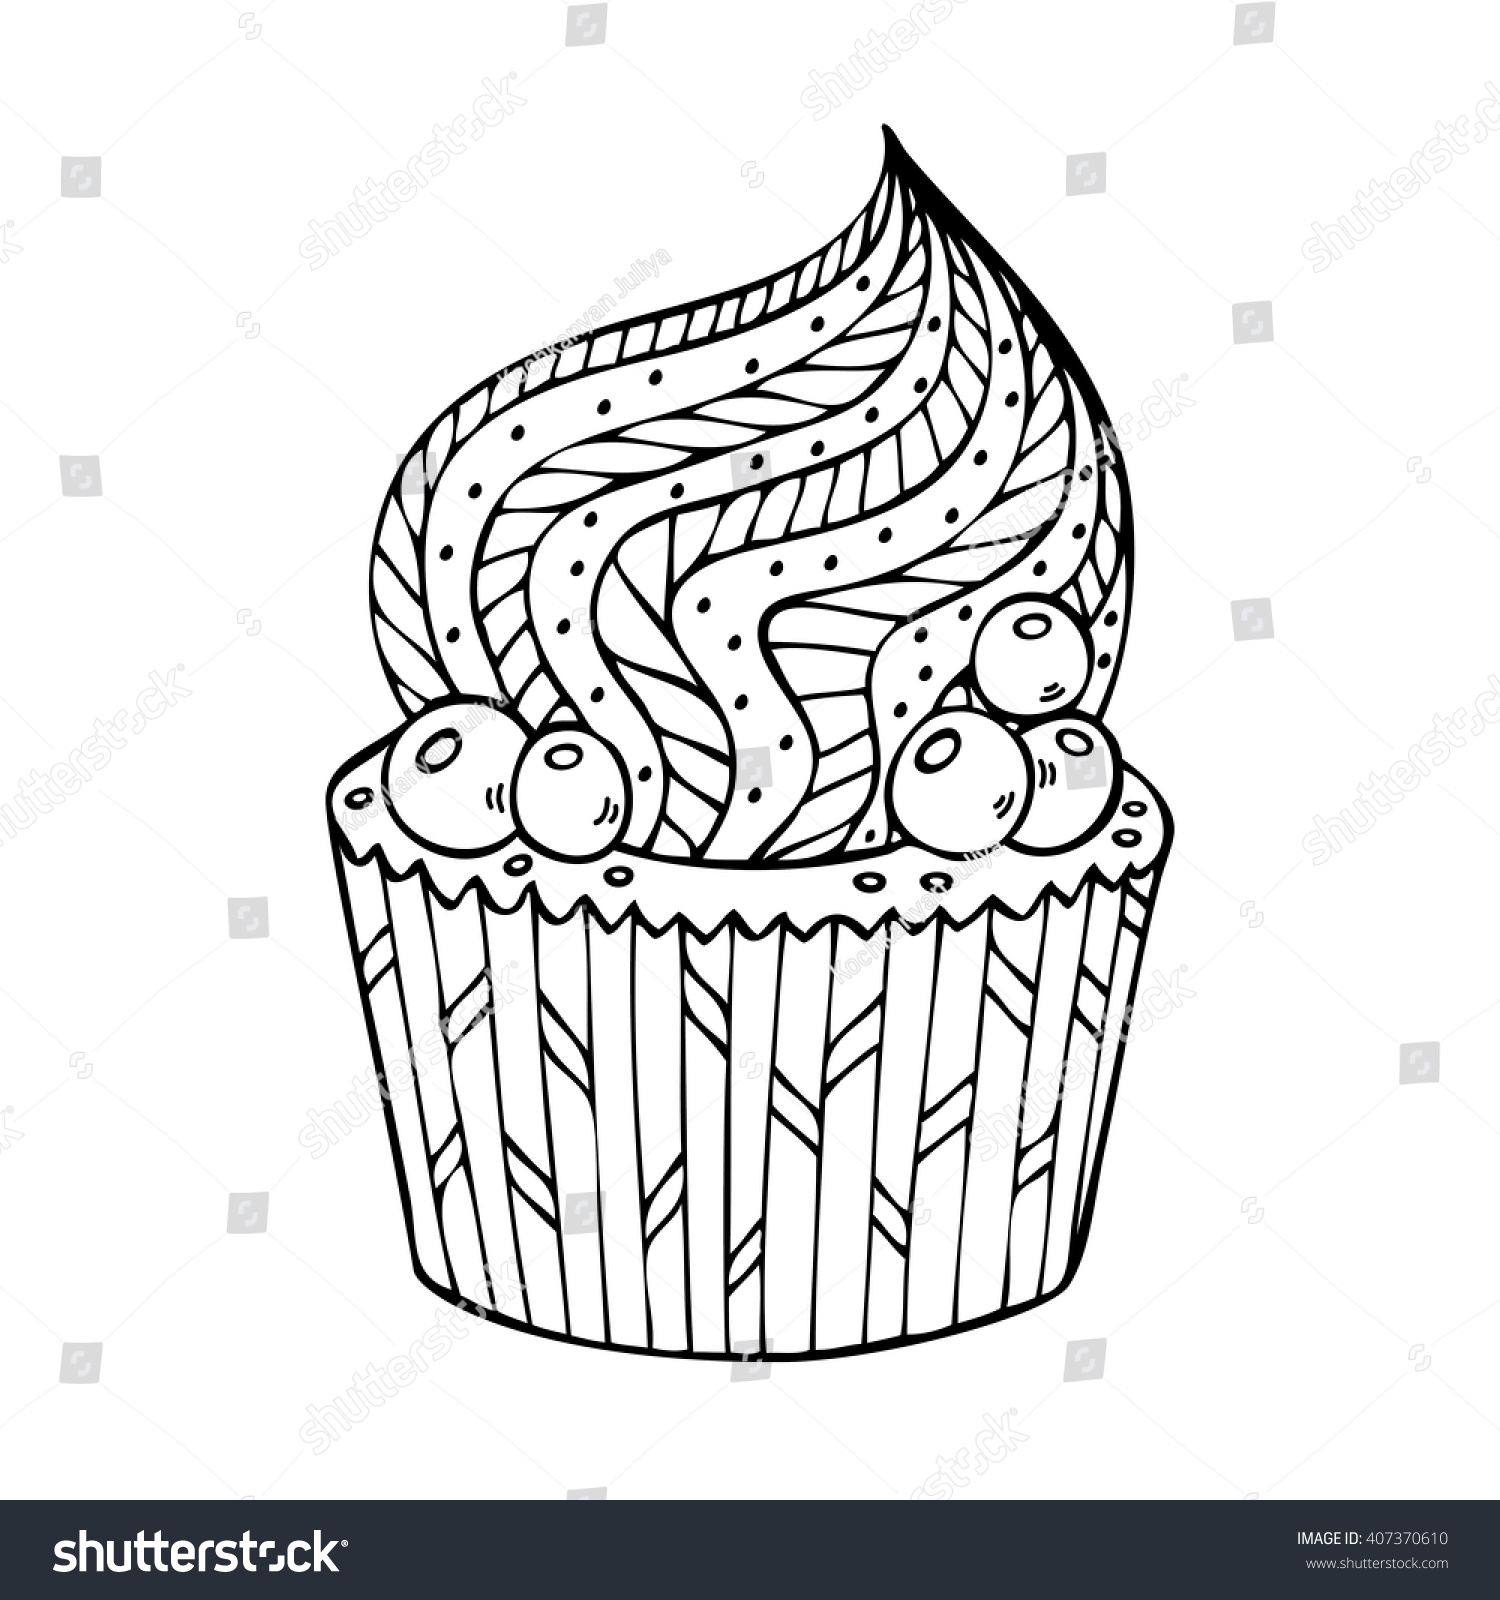 Cupcake Coloring Adults Coloring Book Page Stock Vector (Royalty ...